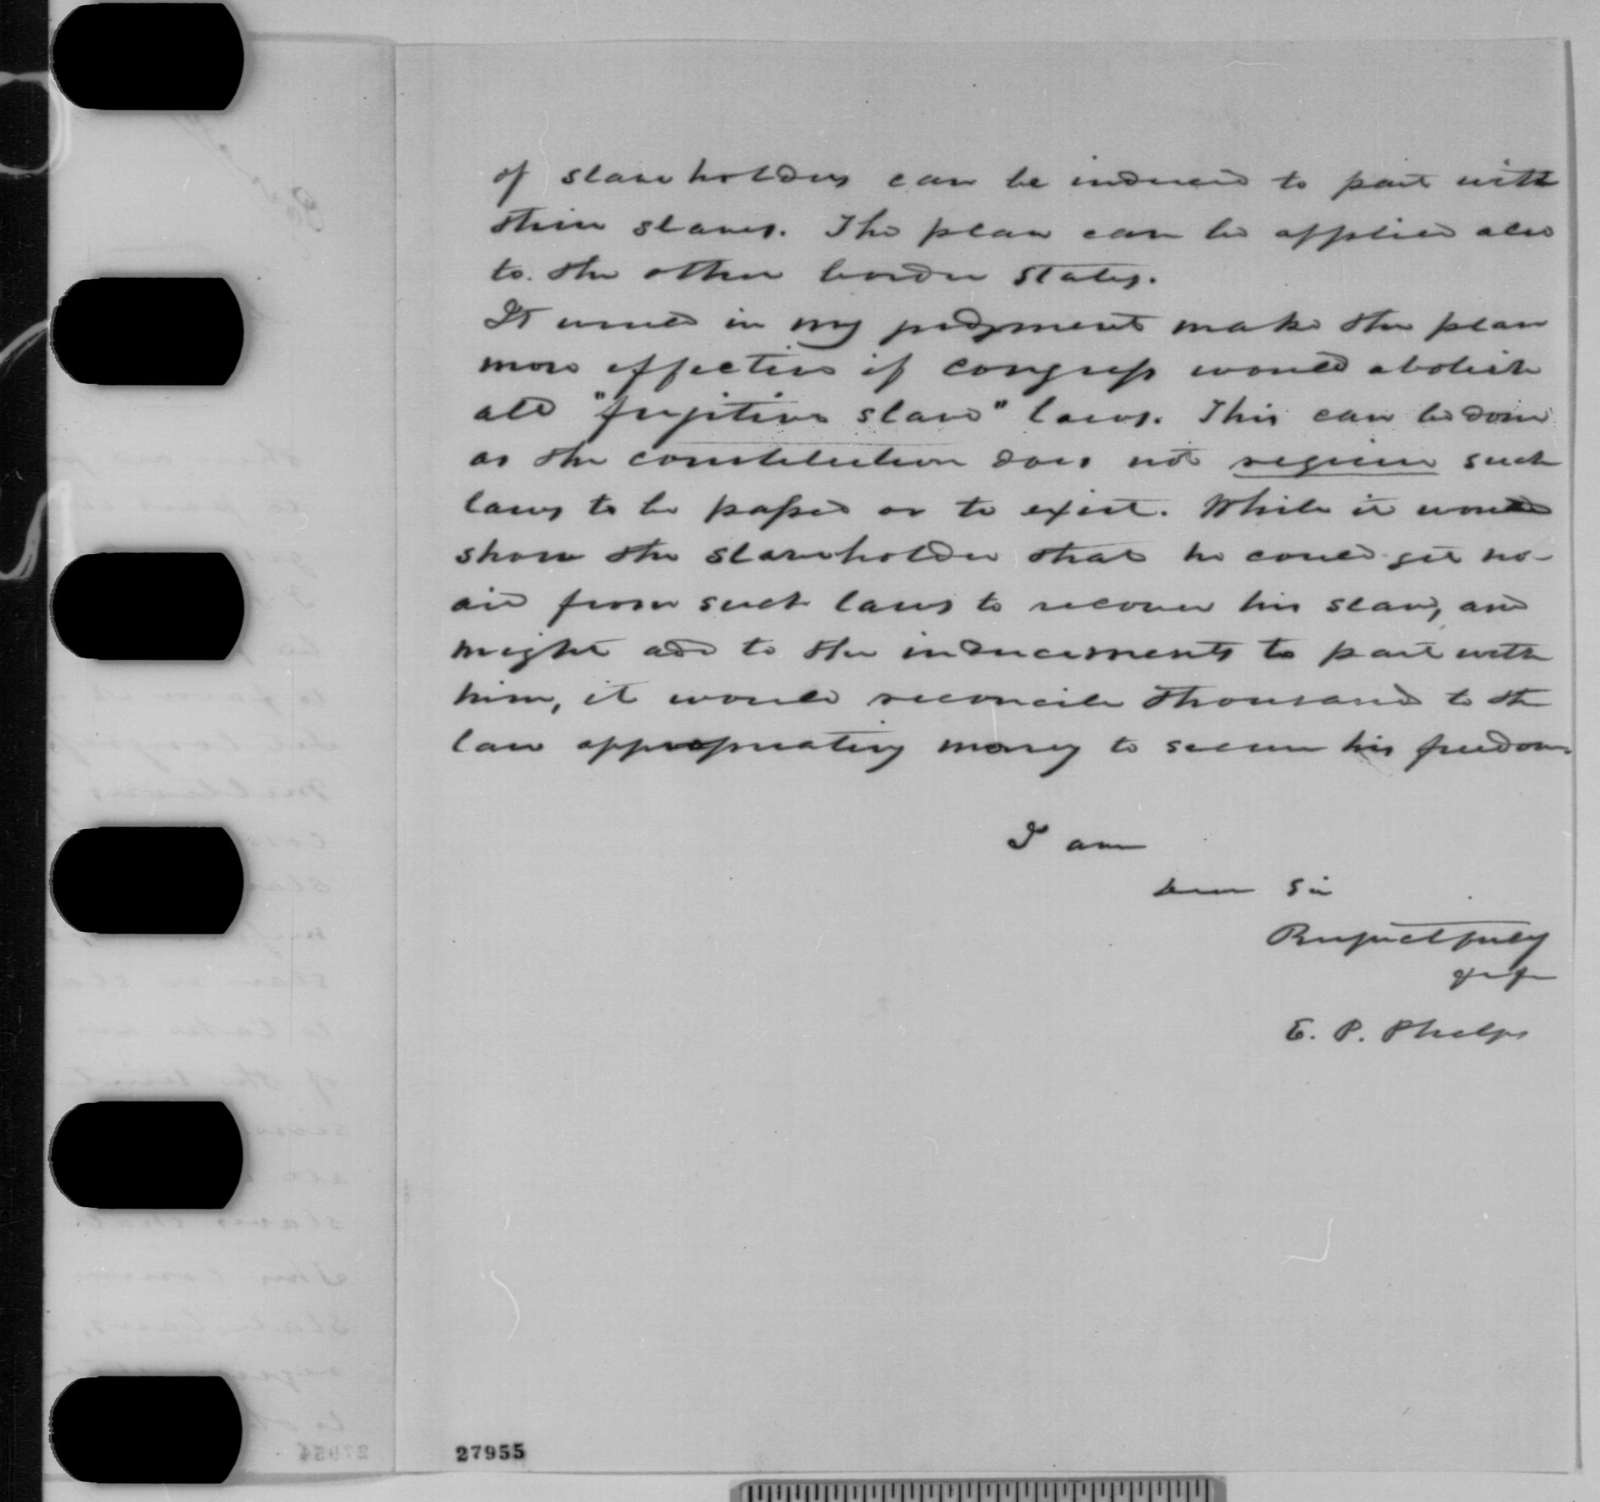 E. P. Phelps to Abraham Lincoln, Tuesday, November 10, 1863  (Plan for emancipation in Maryland)